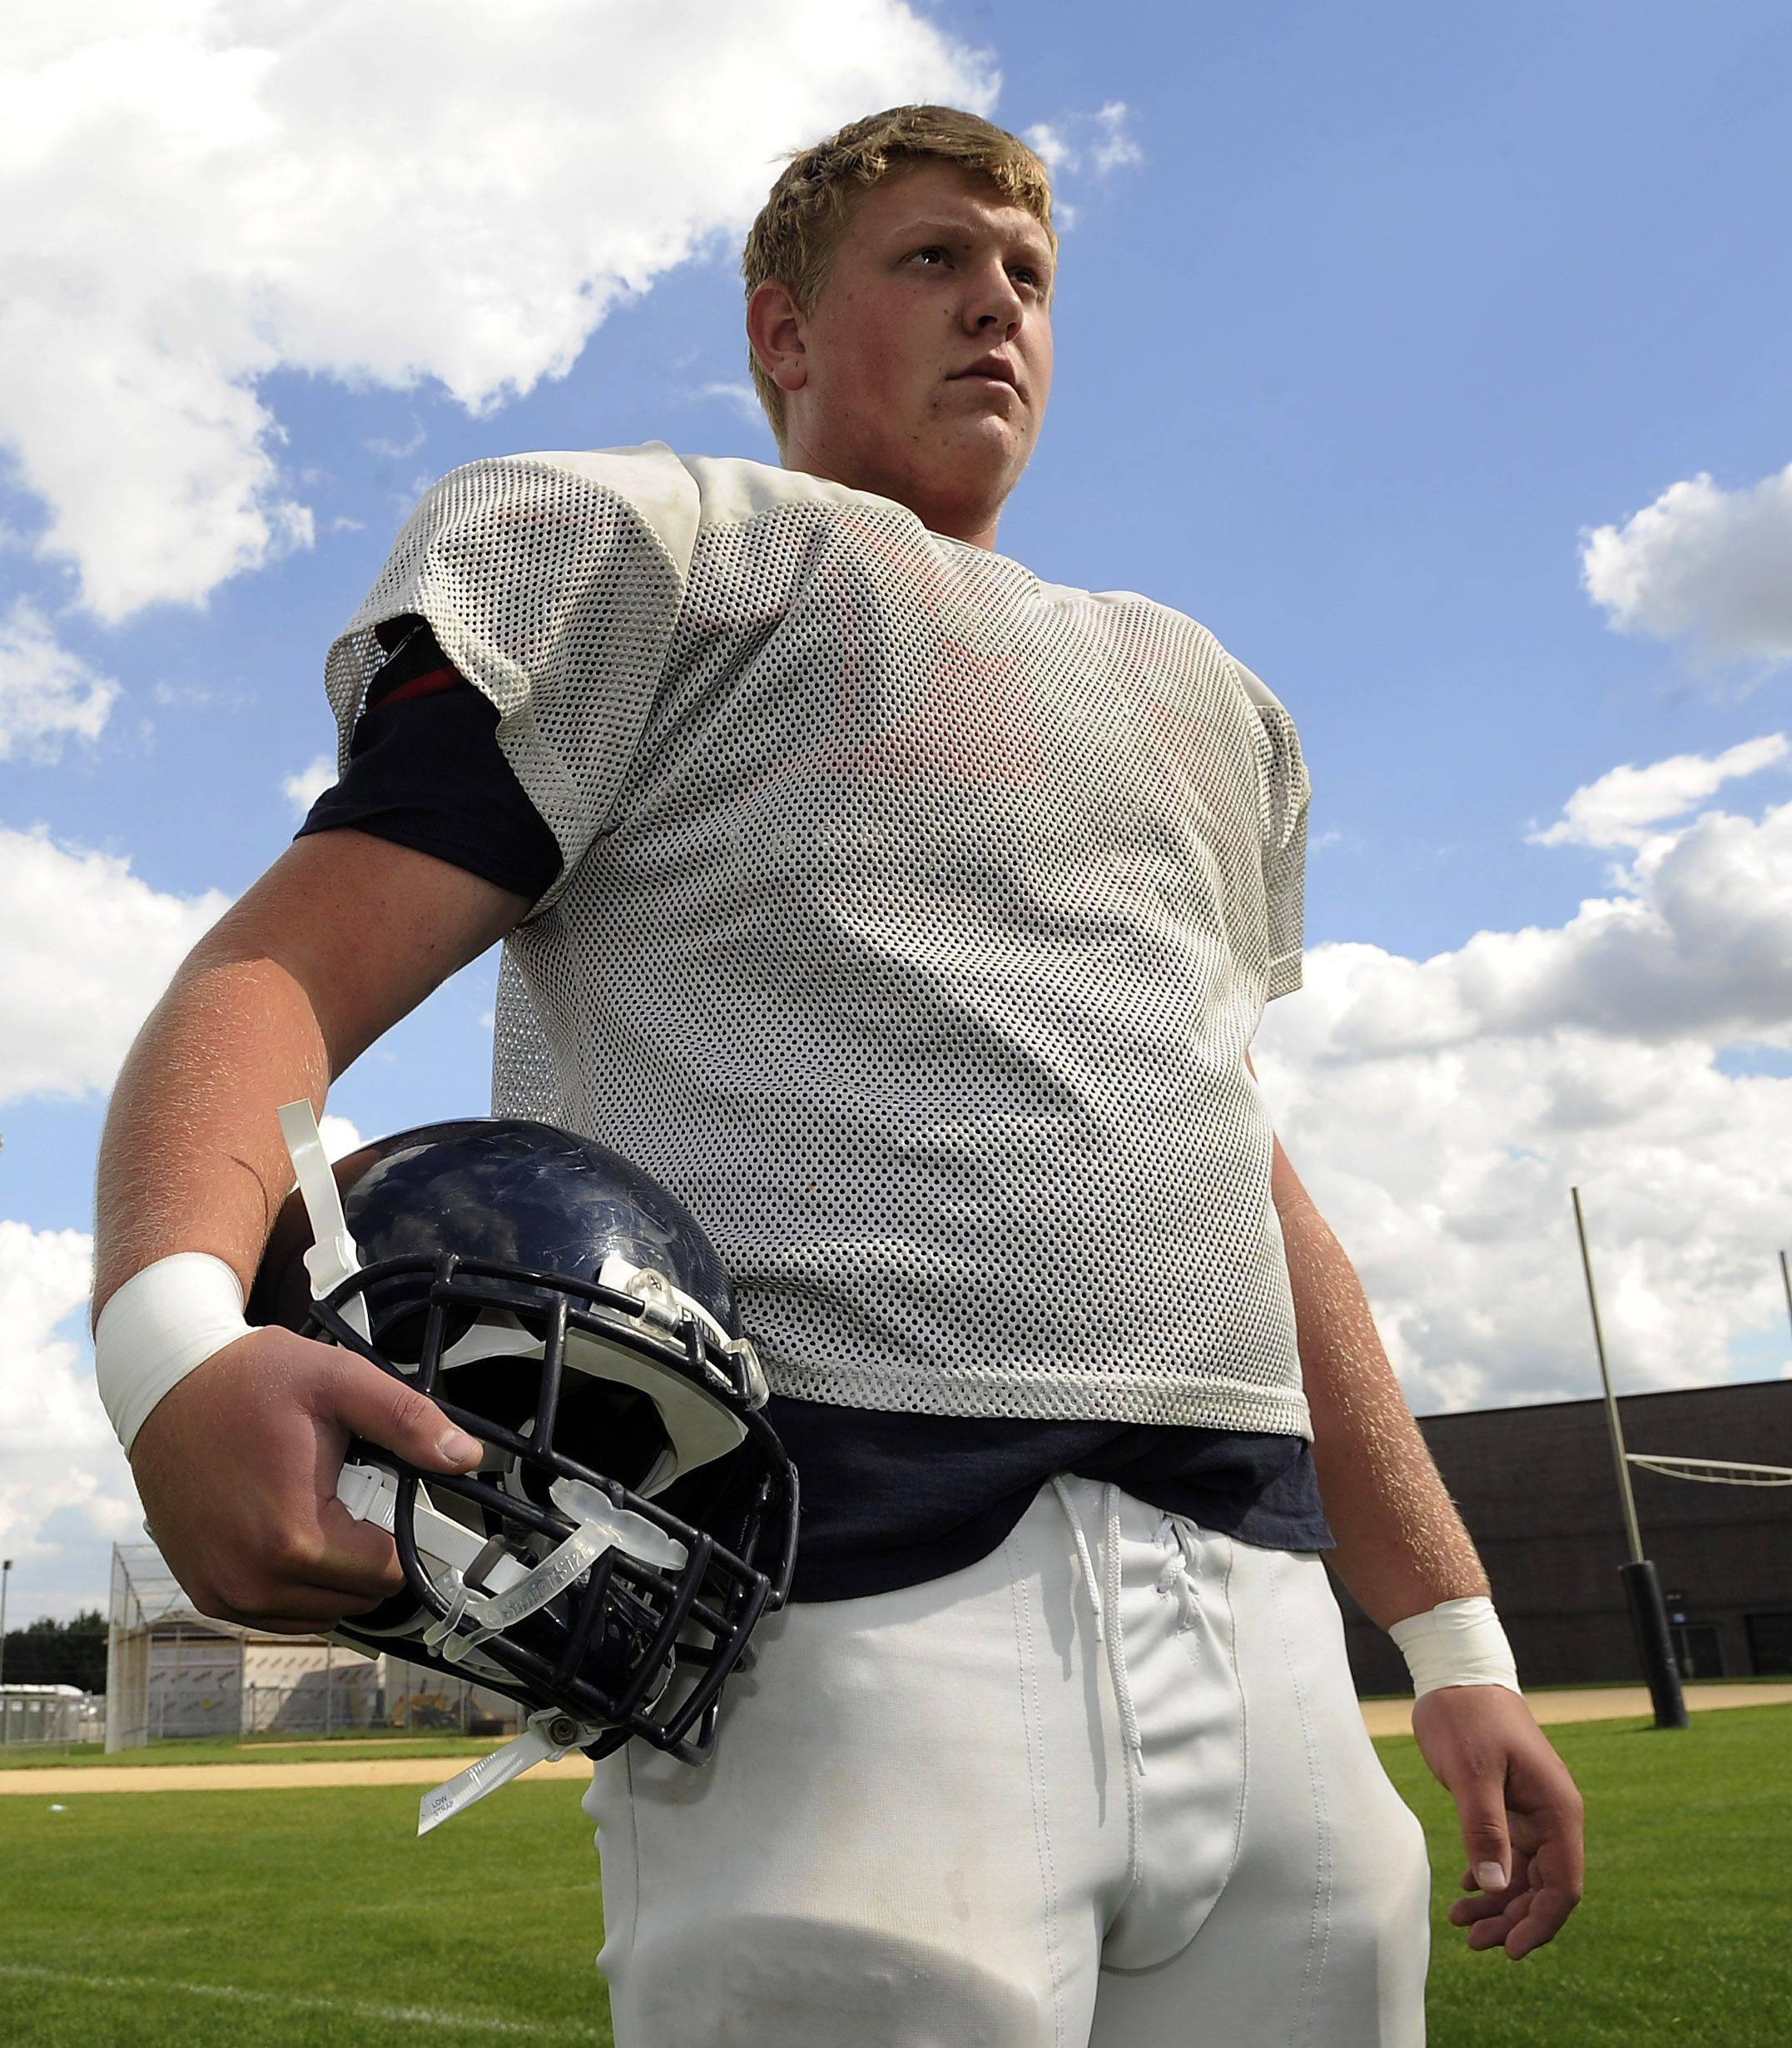 Conant offensive lineman Paul Perschon chose Toledo over five other scholarship offers.